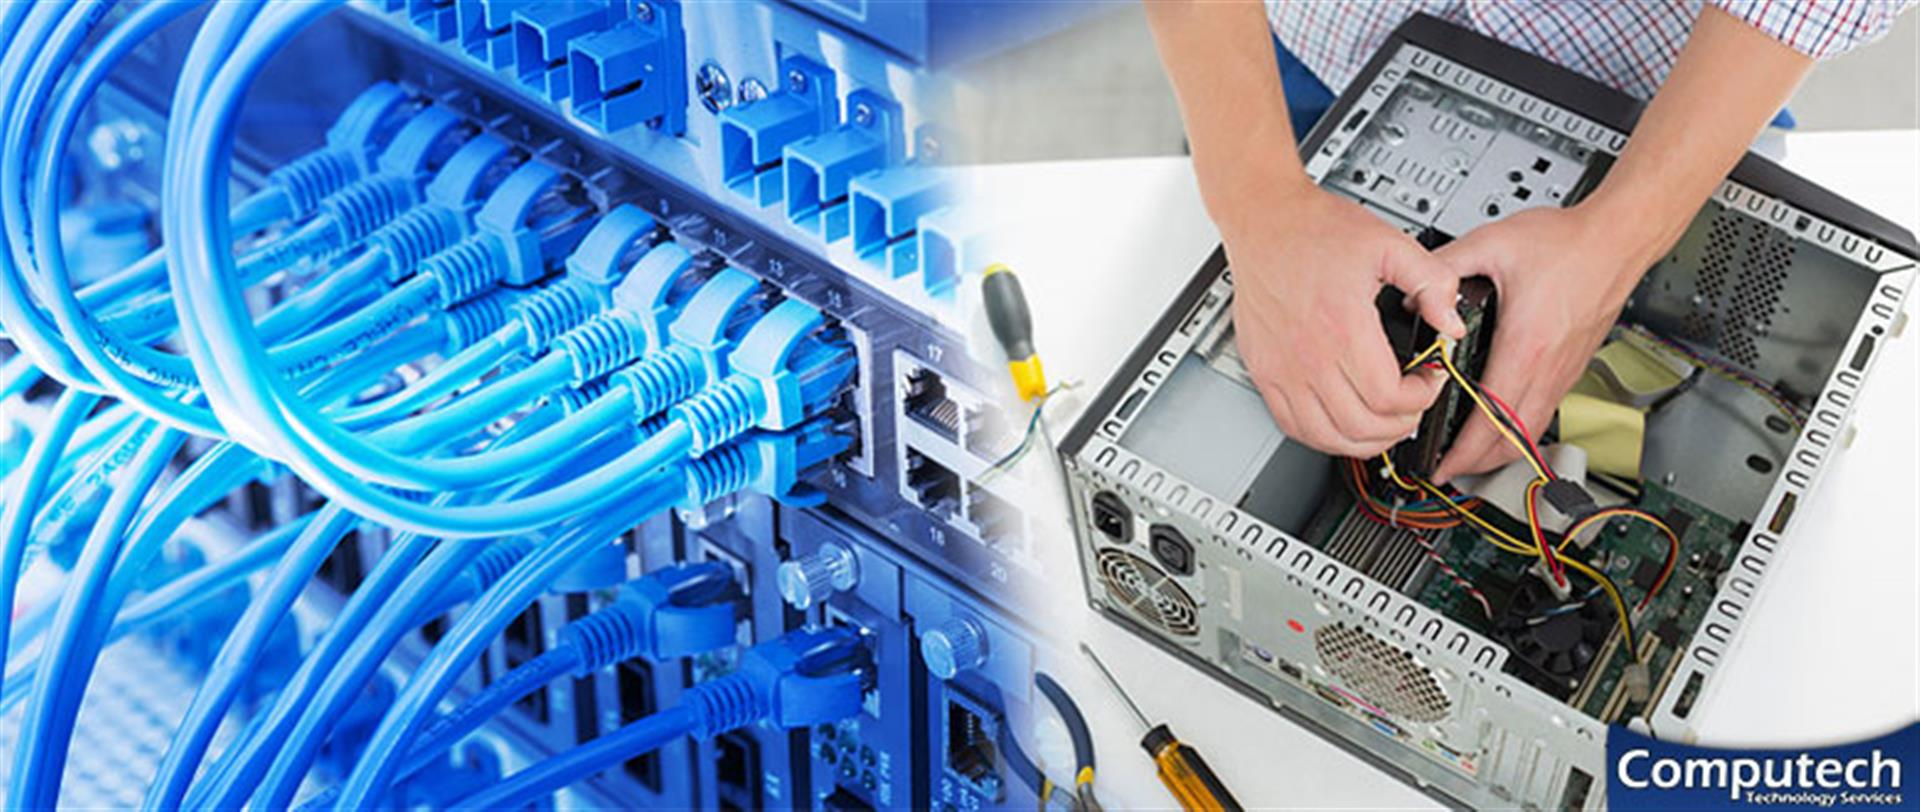 Evergreen Alabama Onsite Computer PC & Printer Repair, Networking, Telecom & Data Low Voltage Cabling Solutions